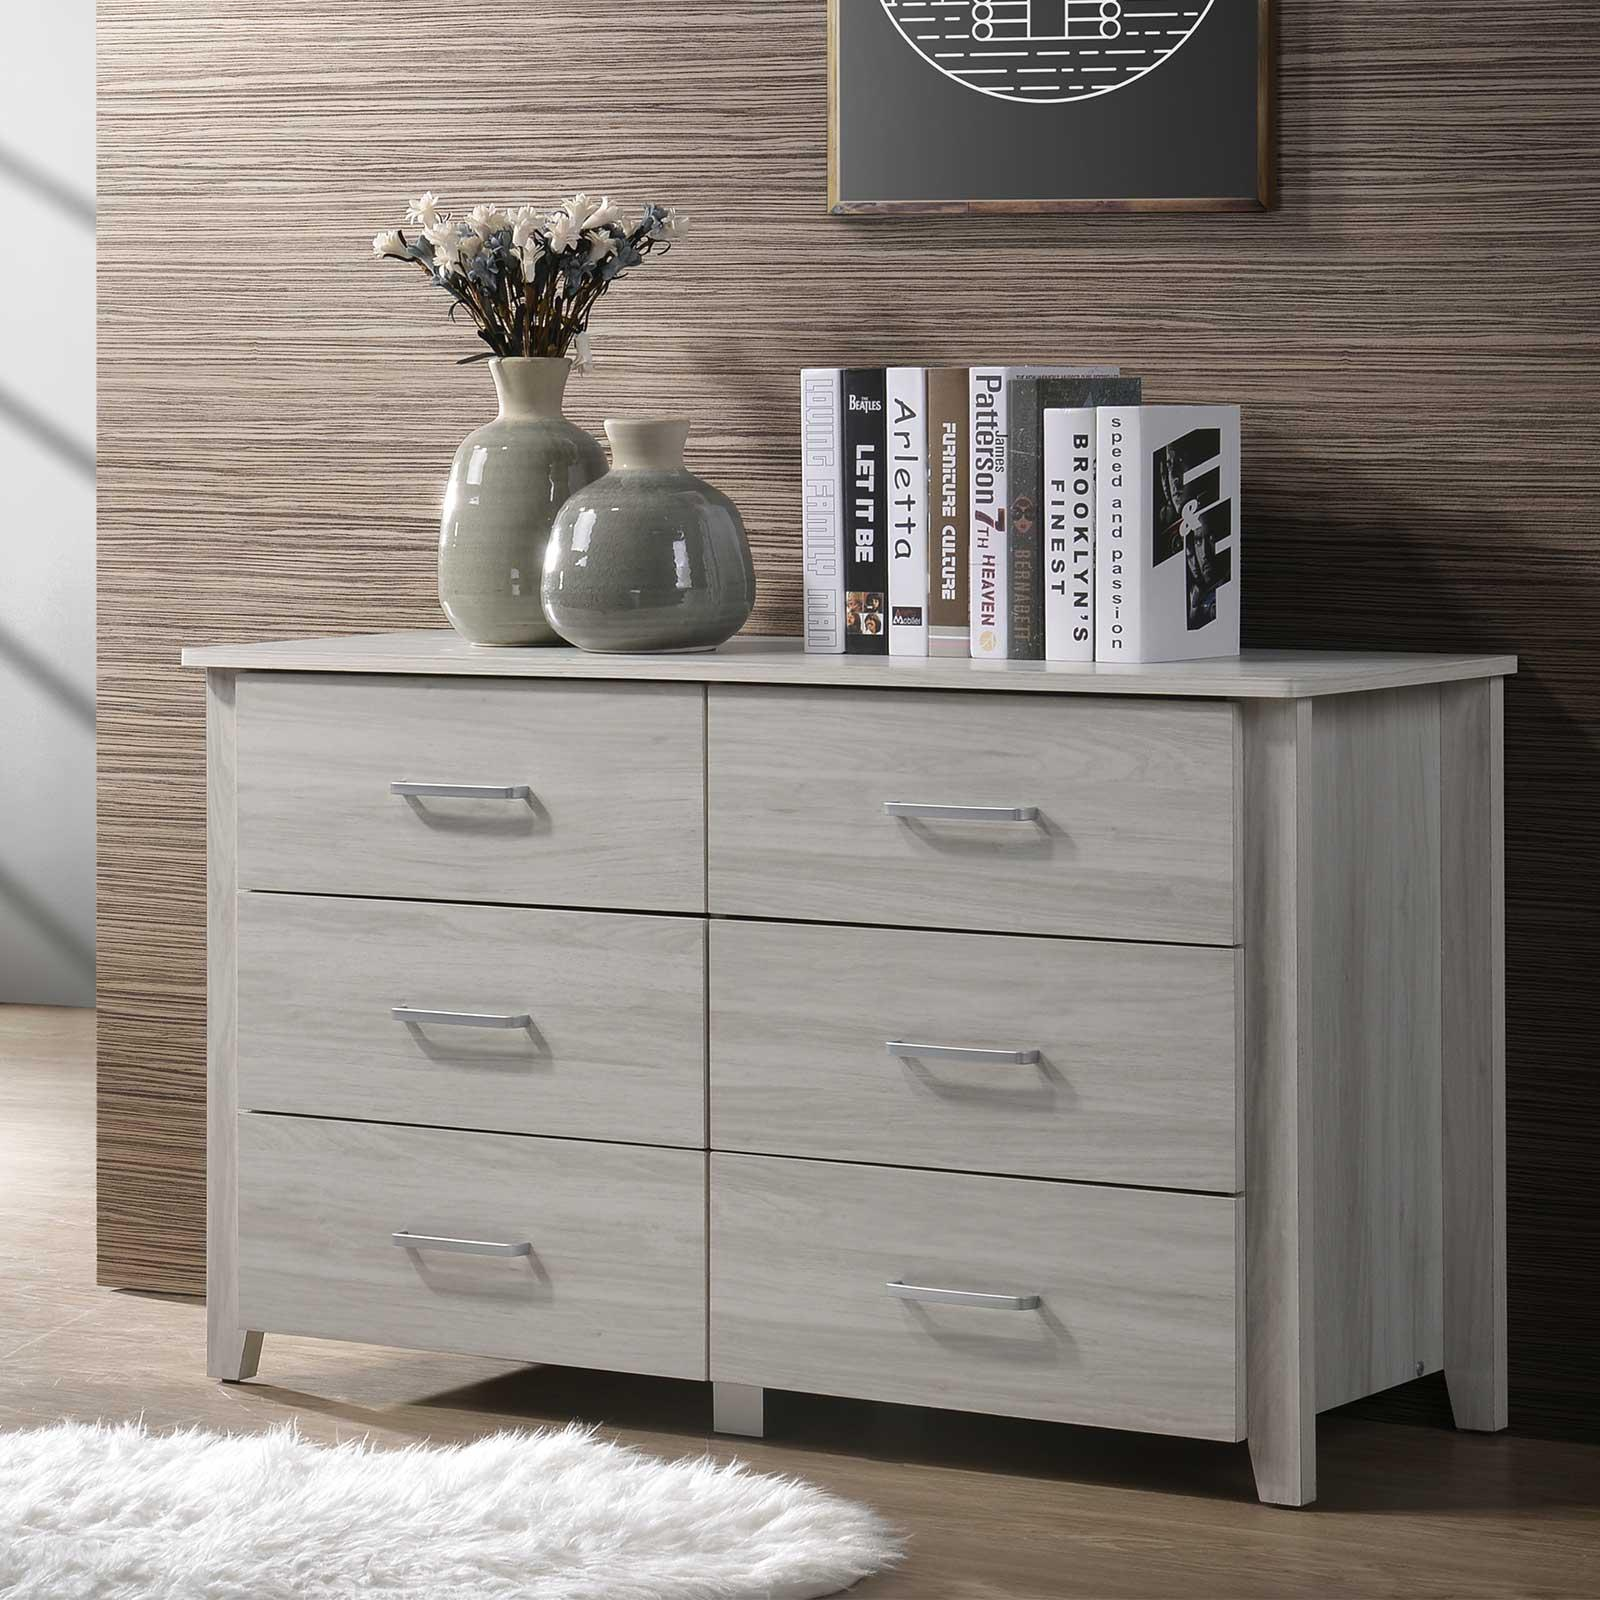 Chest Of Drawers (Free Installation + Delivery) Dresser Storage Cabinet In Light Oak